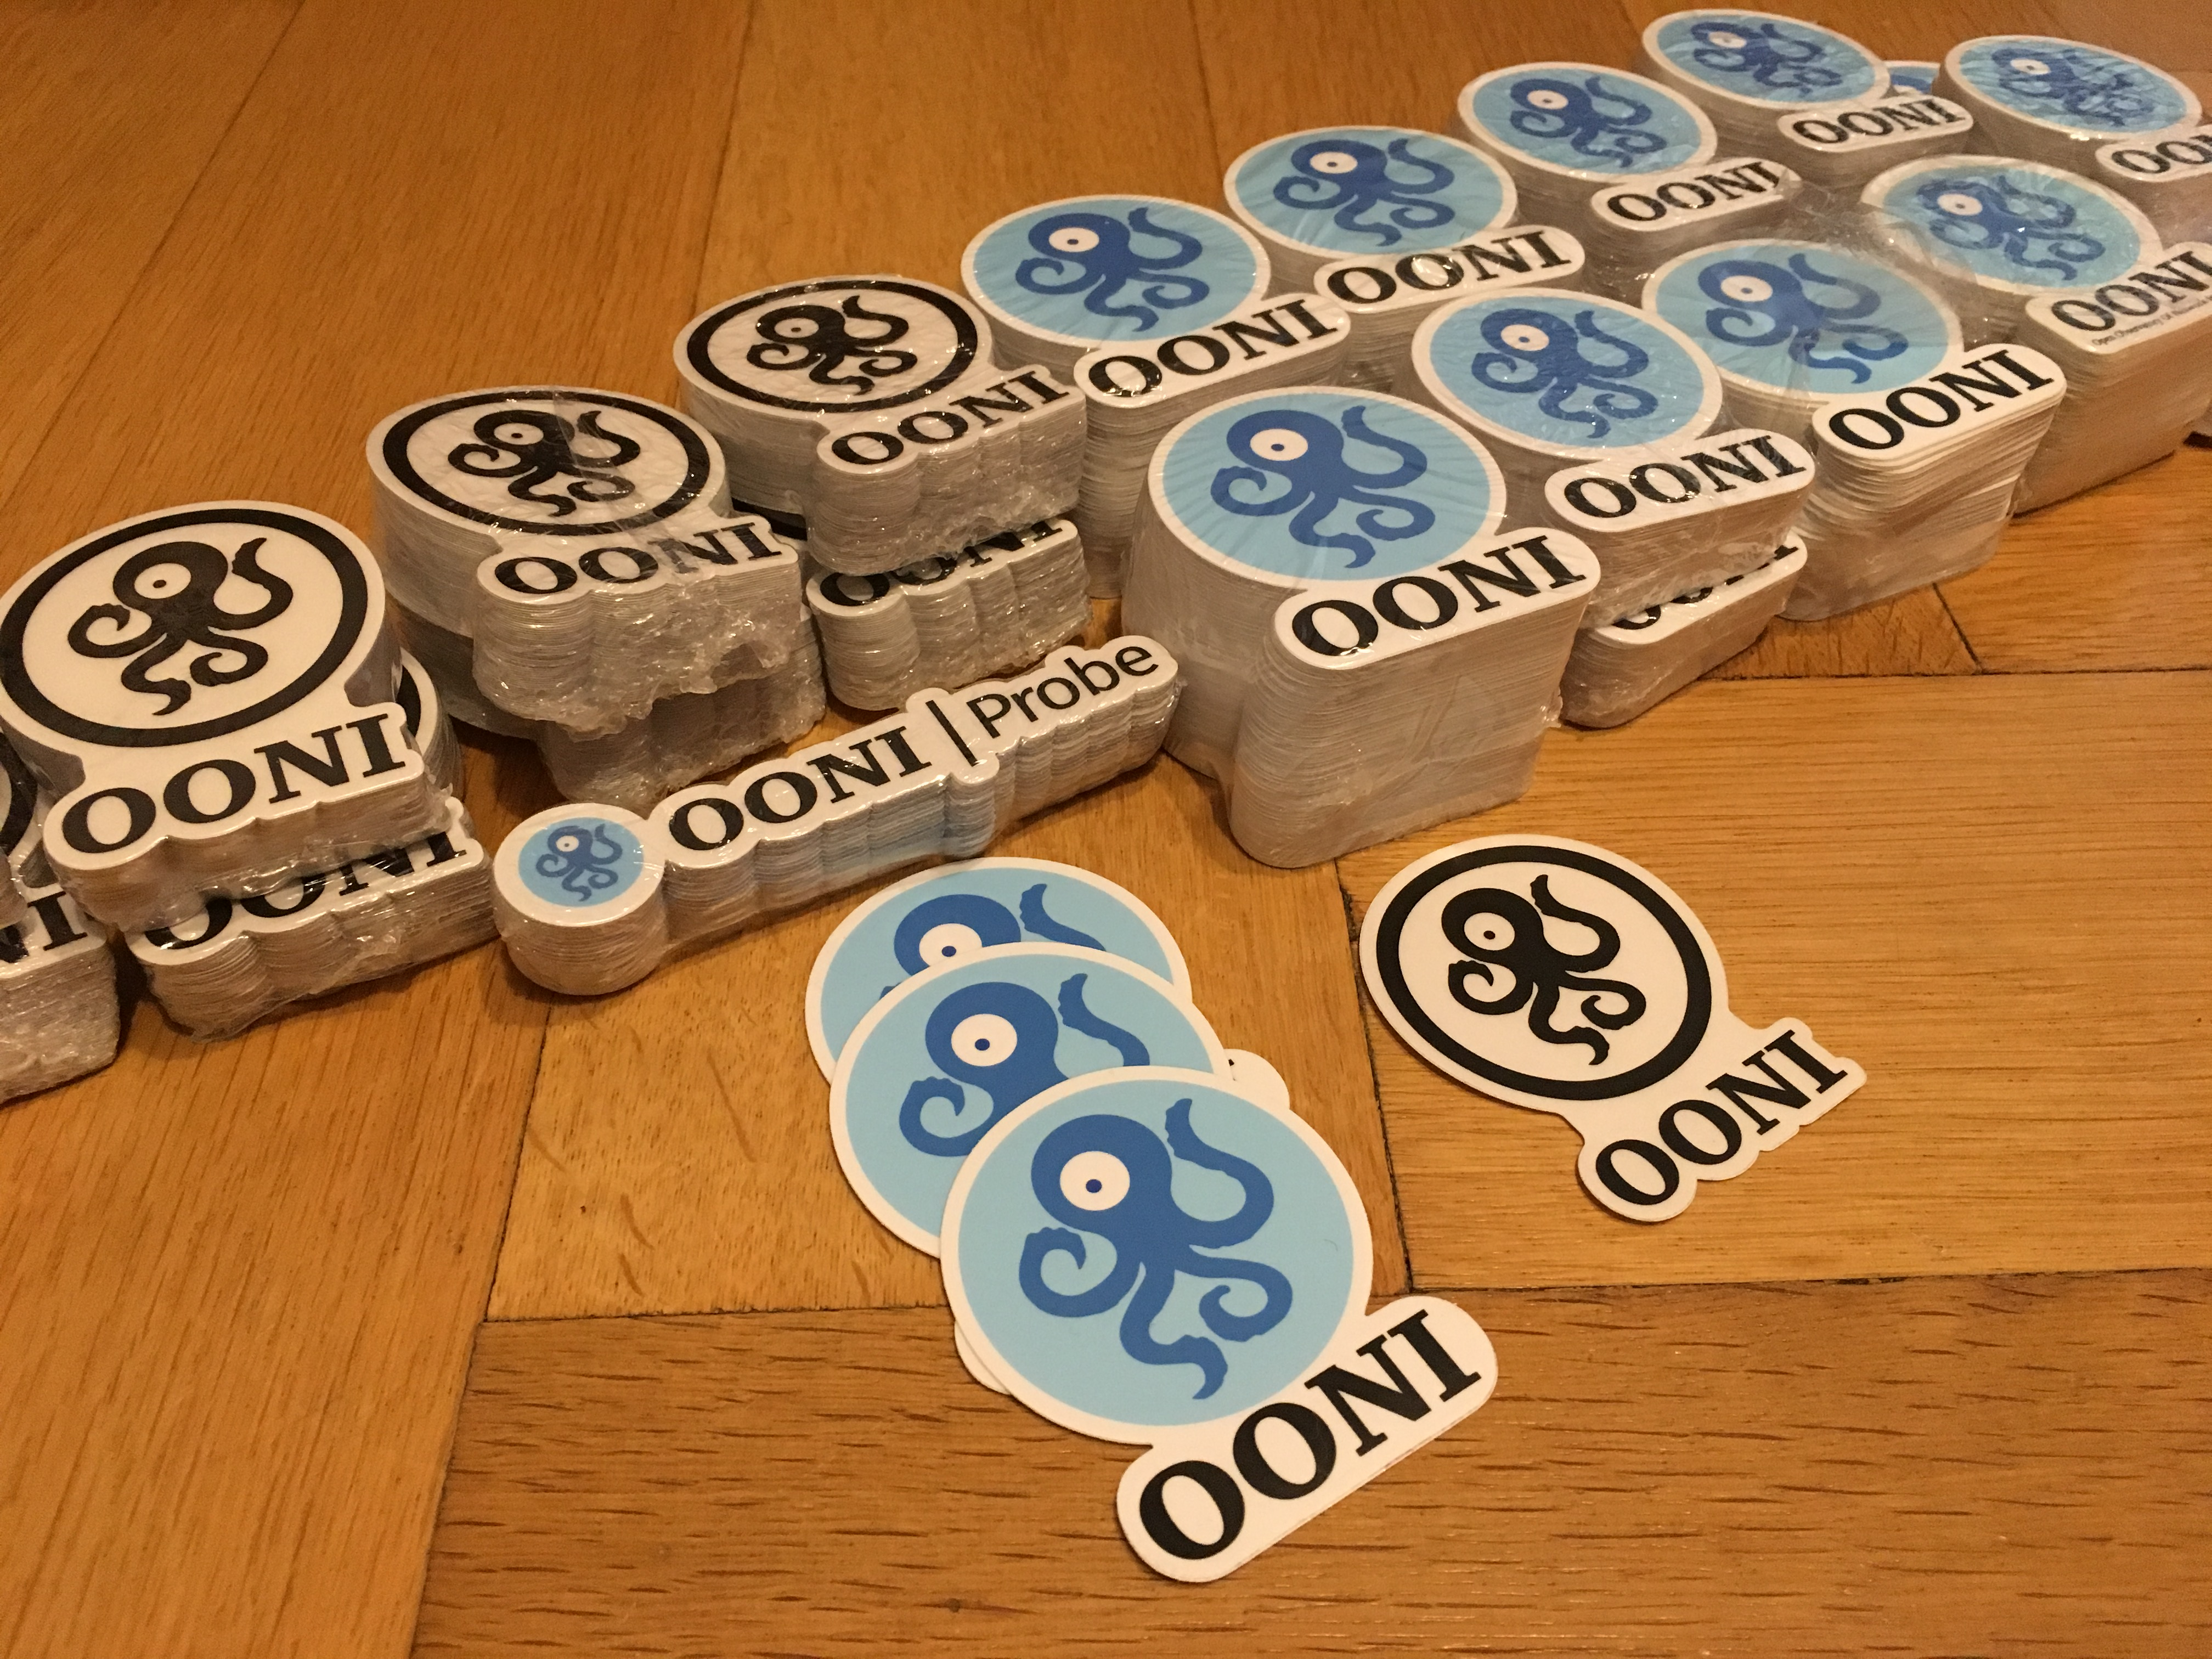 OONI Stickers